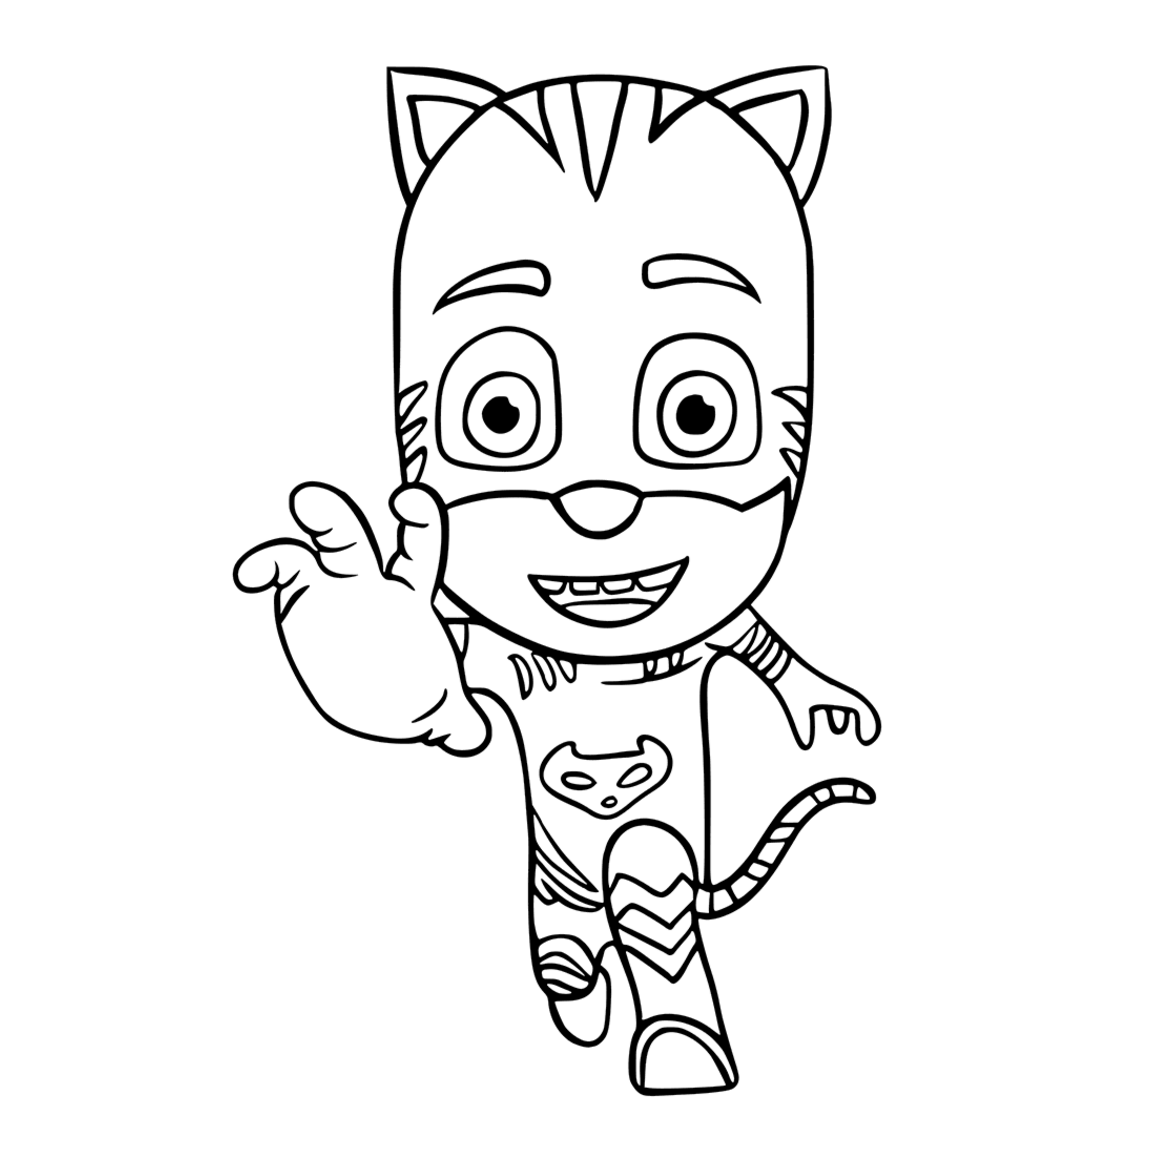 coloring masks pj masks coloring pages to download and print for free coloring masks